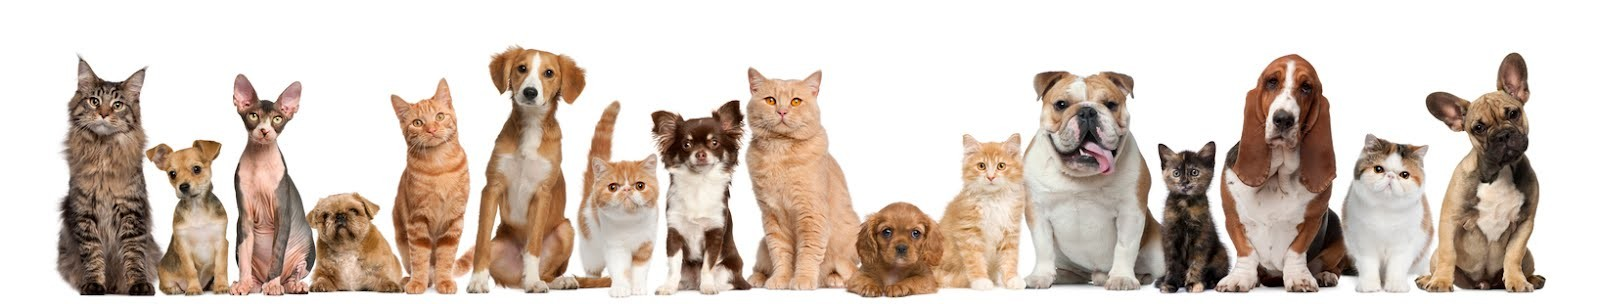 cropped-lots-of-cats-and-dogs.jpg